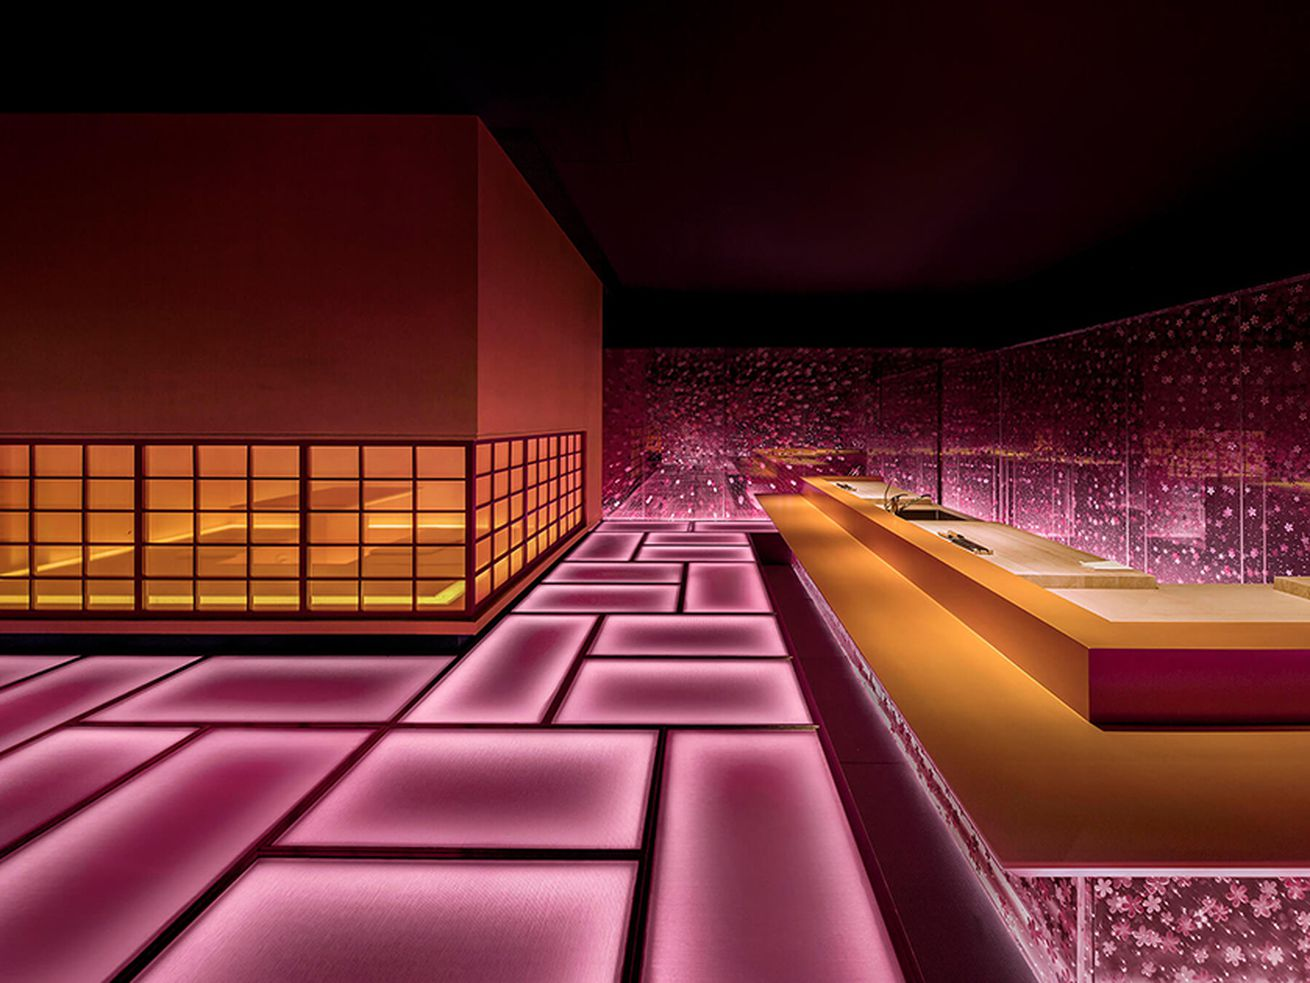 This glowing pink restaurant is an op-art treat